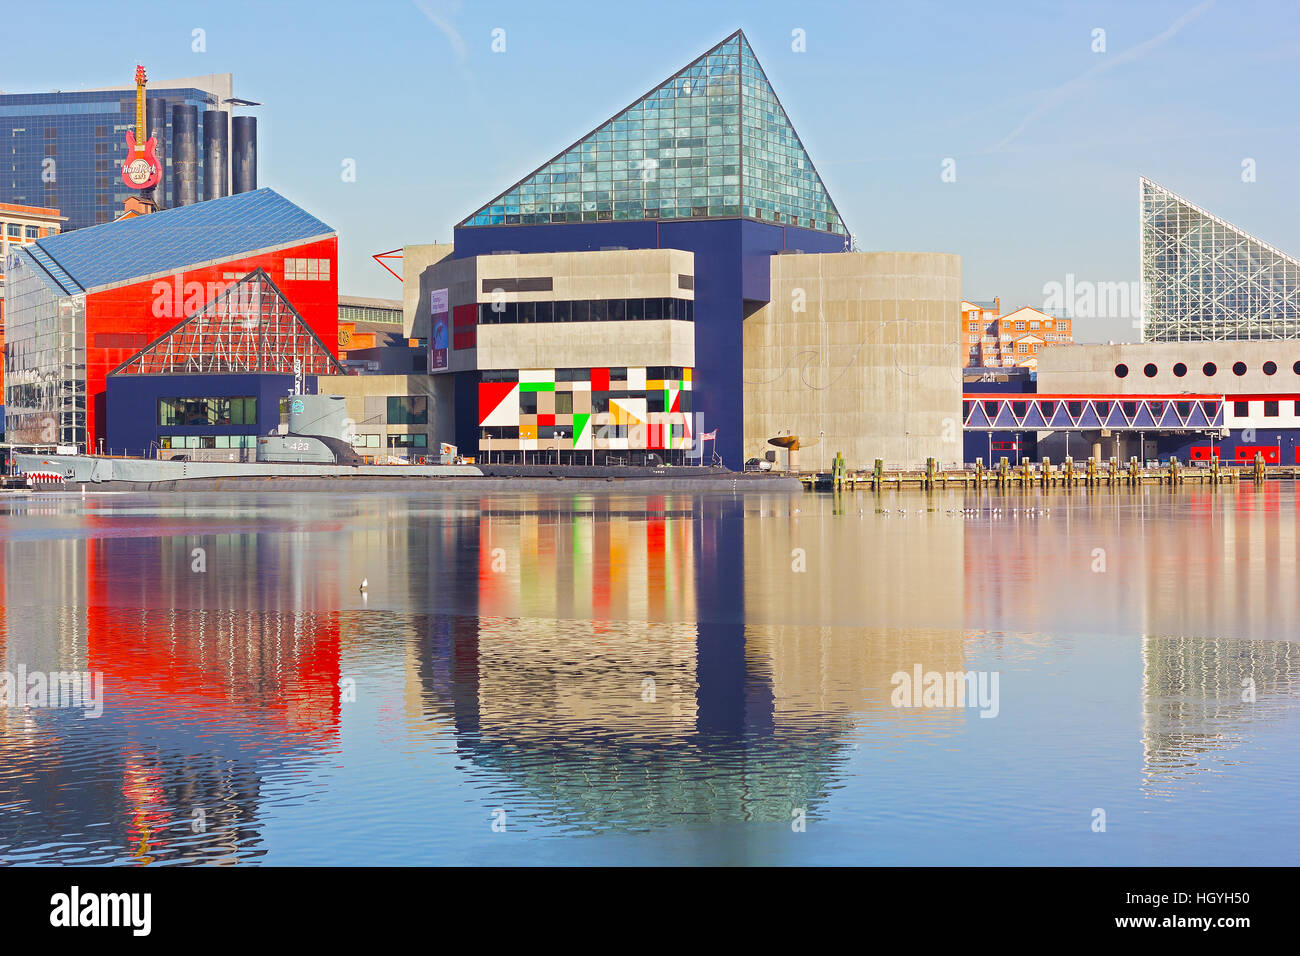 National Aquarium and historic submarine Torsk at Inner Harbor in Baltimore, USA - Stock Image